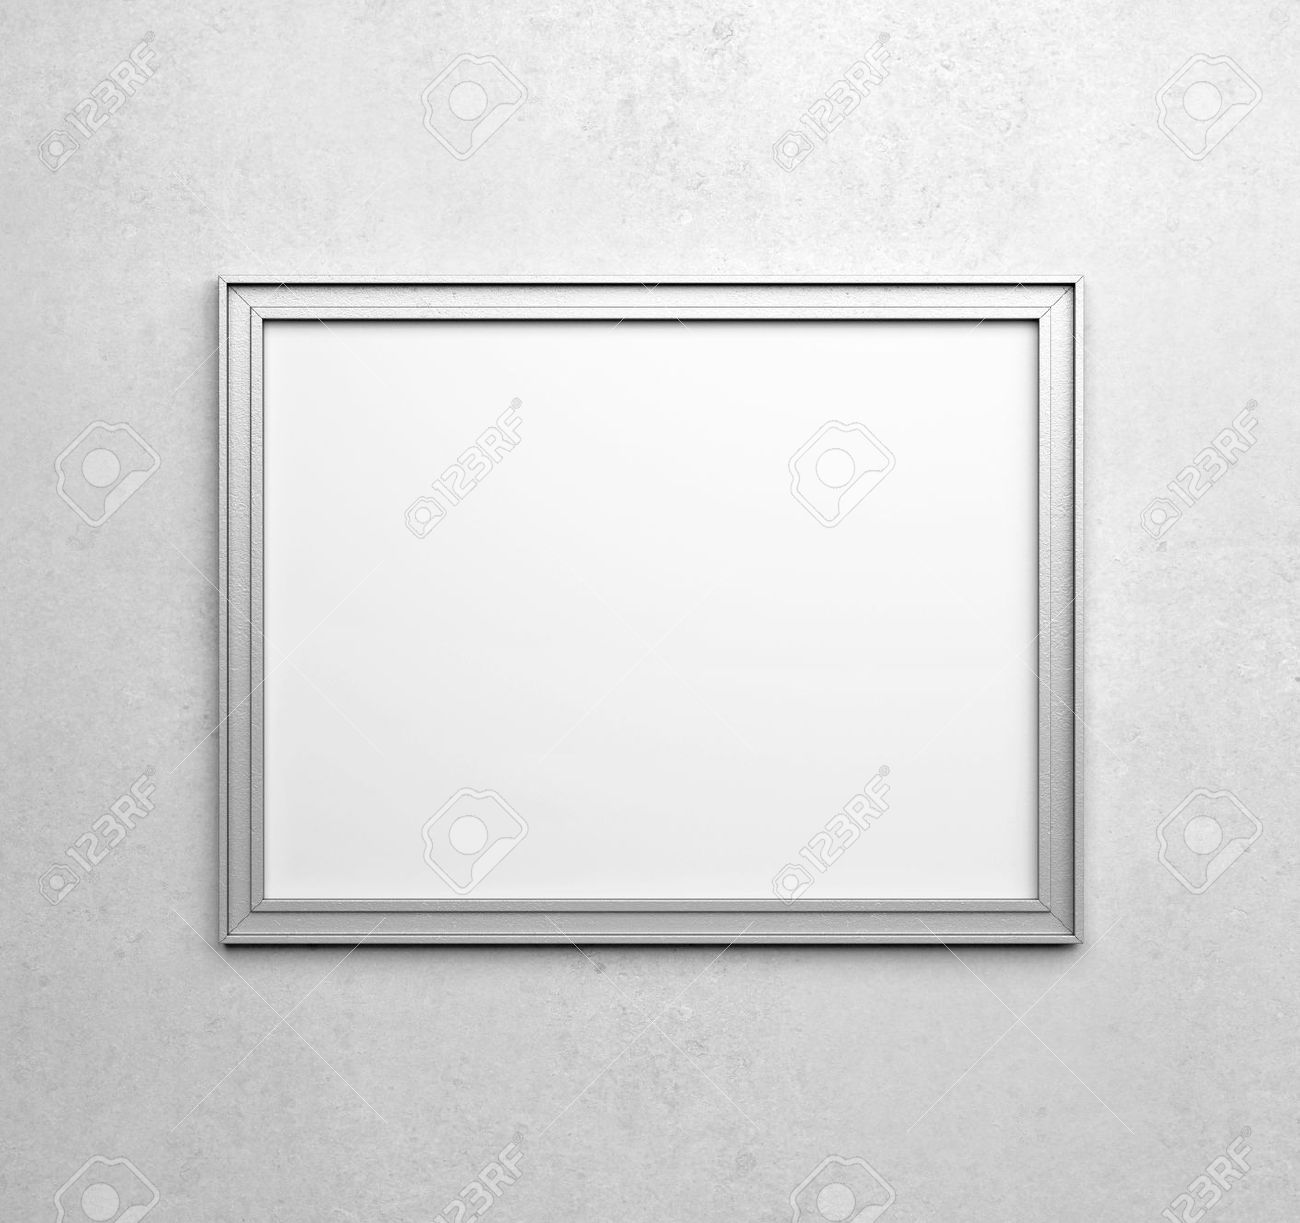 Silver Frames On White Wall Stock Photo, Picture And Royalty Free ...